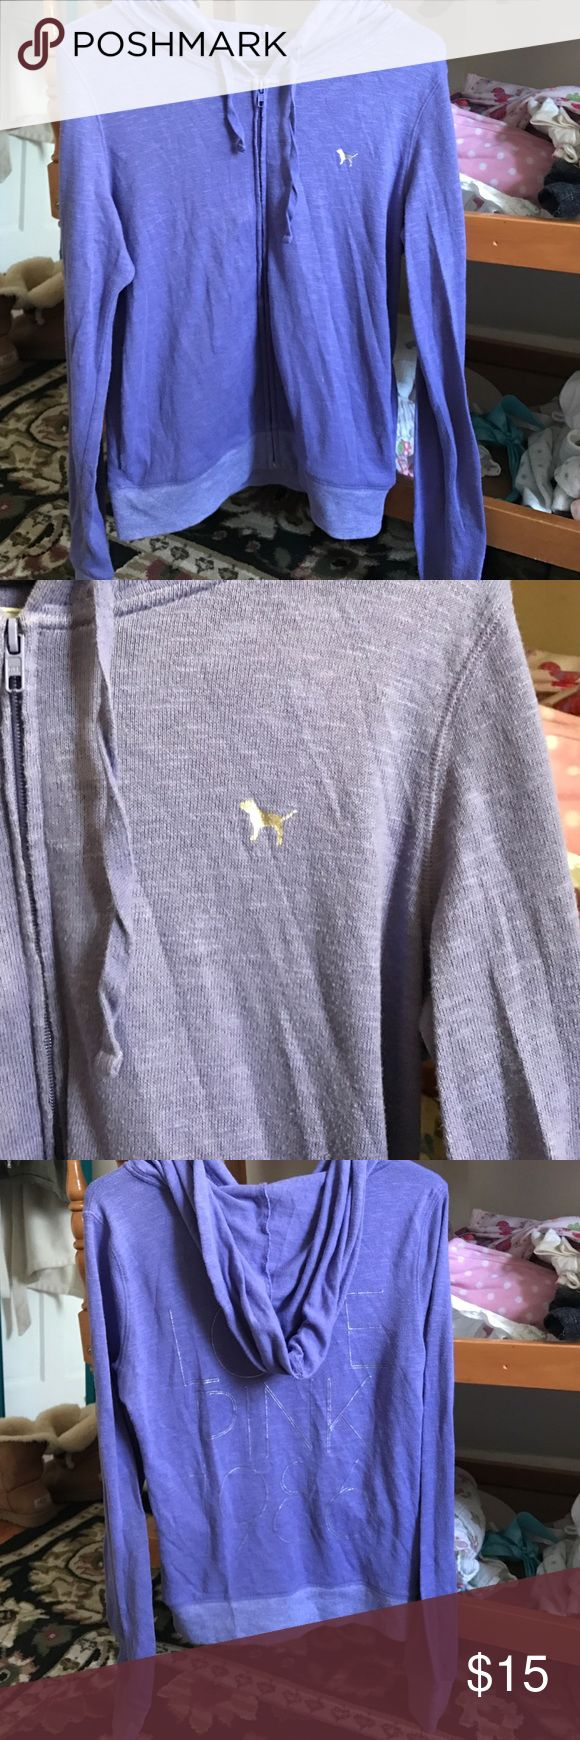 Purplish blue zip up hoodie from Victoria secrets Only worn a couple times. it's light weight with silver accents it's a size small but fits more like a medium! PINK Victoria's Secret Tops Sweatshirts & Hoodies